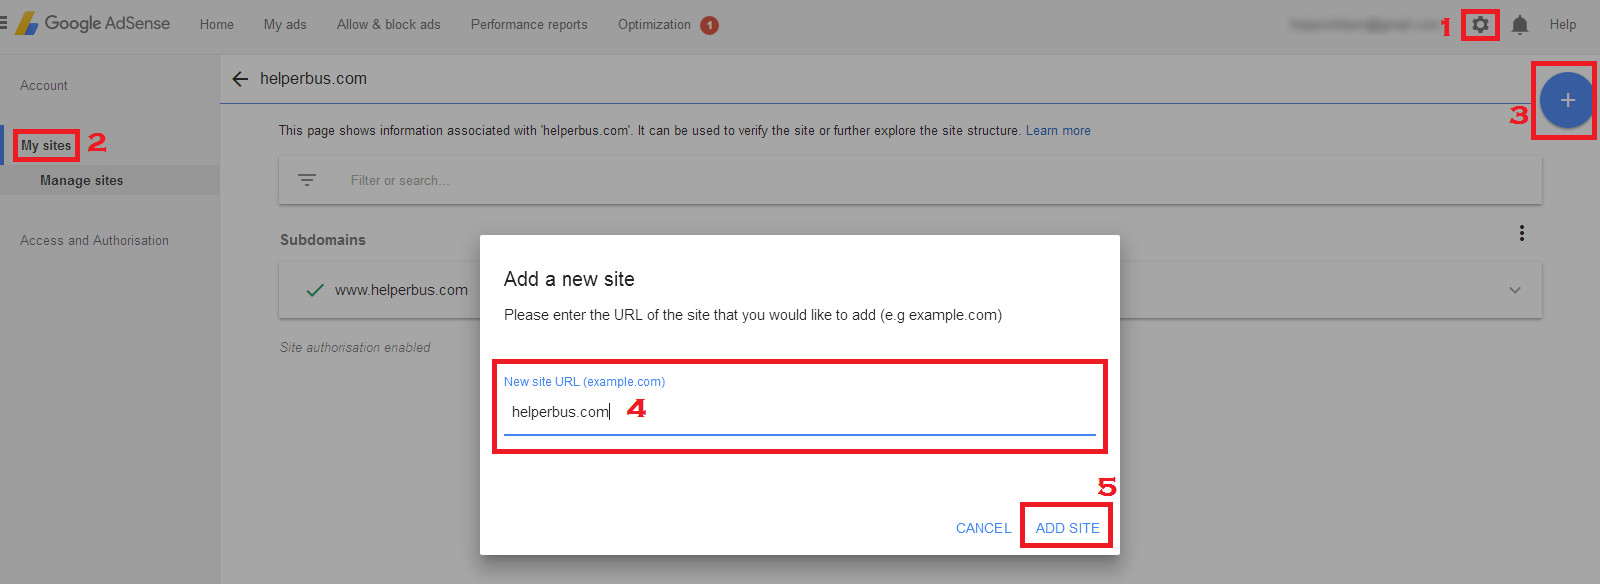 Adsense 403 Forbidden Error Kaise Fix Kare?